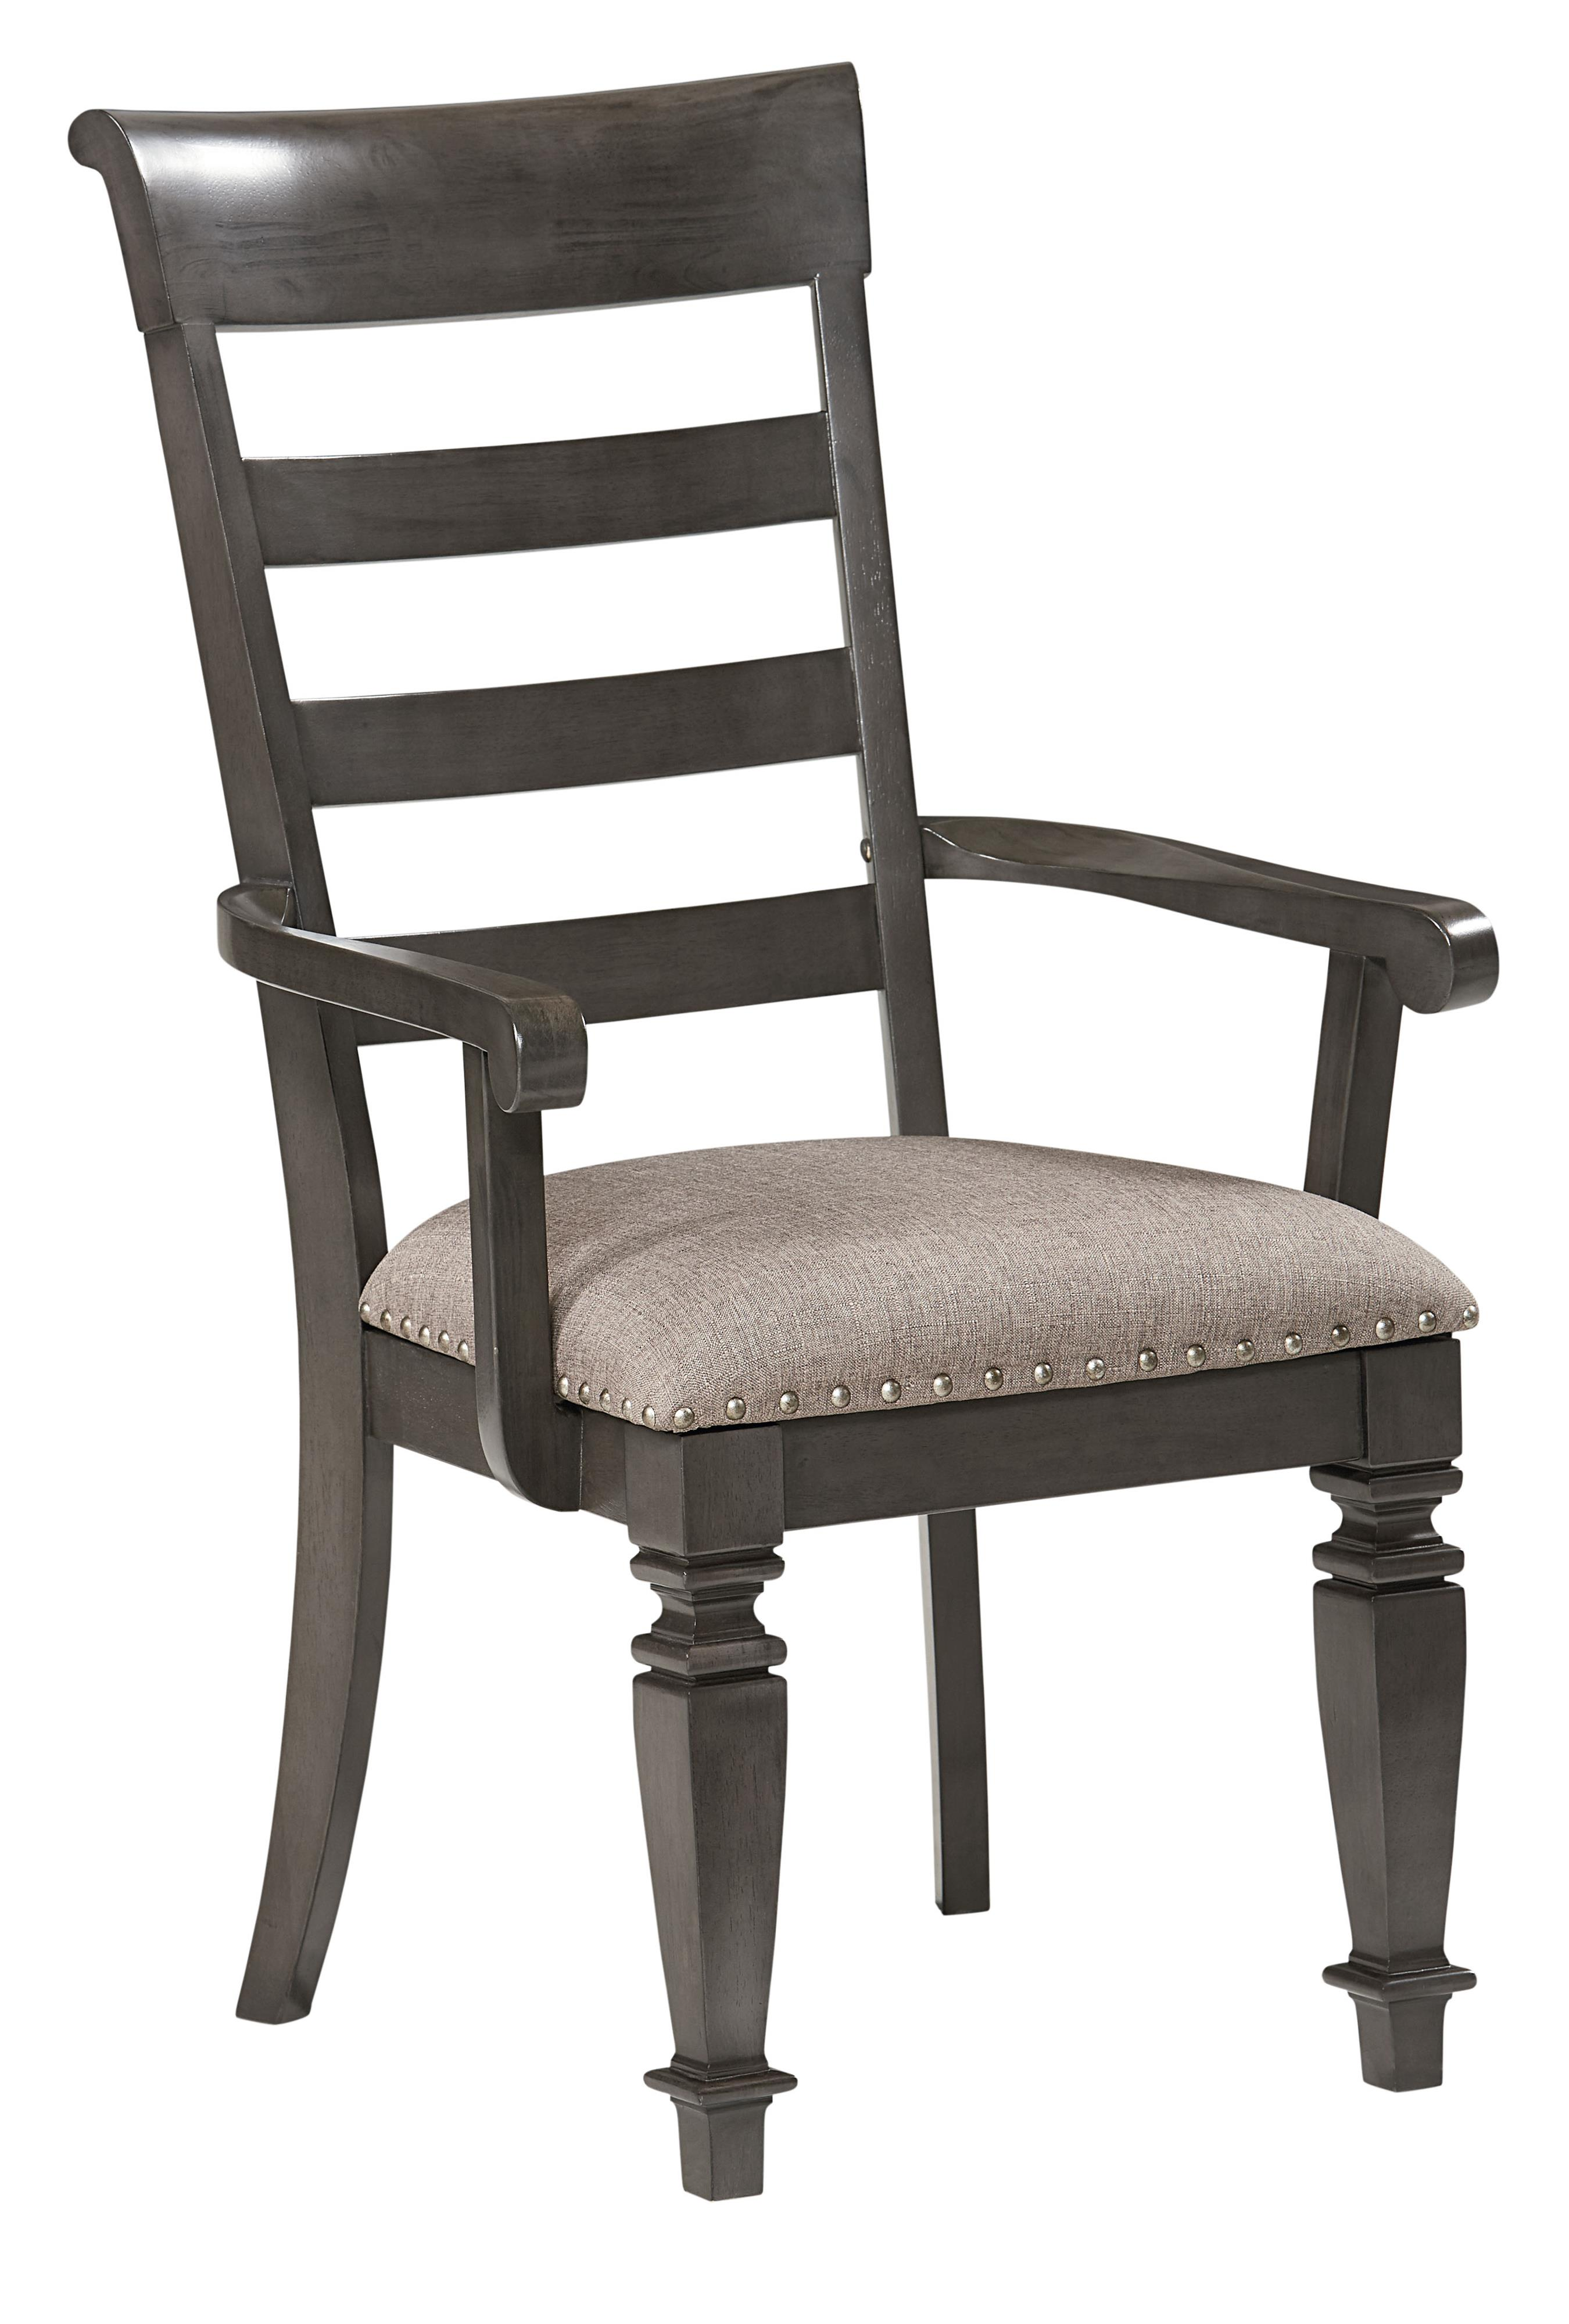 Standard Furniture Garrison Arm Chair - Item Number: 14905